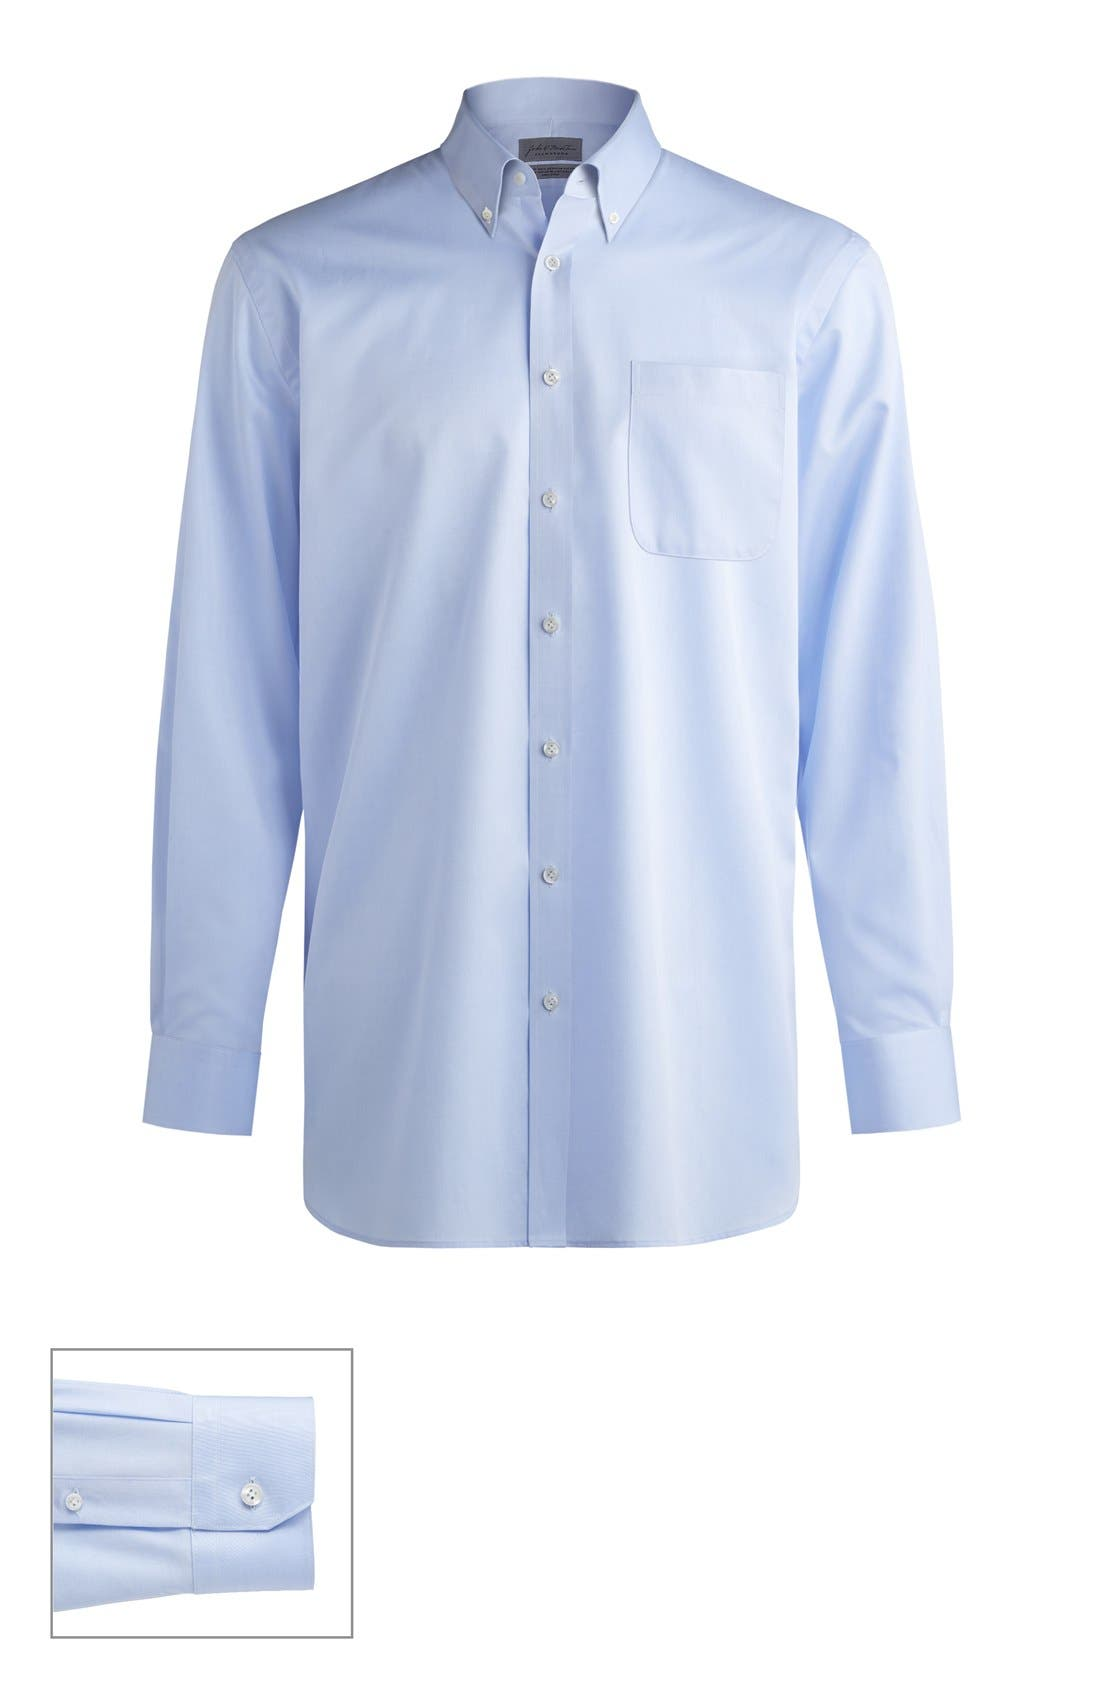 John W. Nordstrom® Made to Measure Classic Fit Button Down Collar Solid Dress Shirt